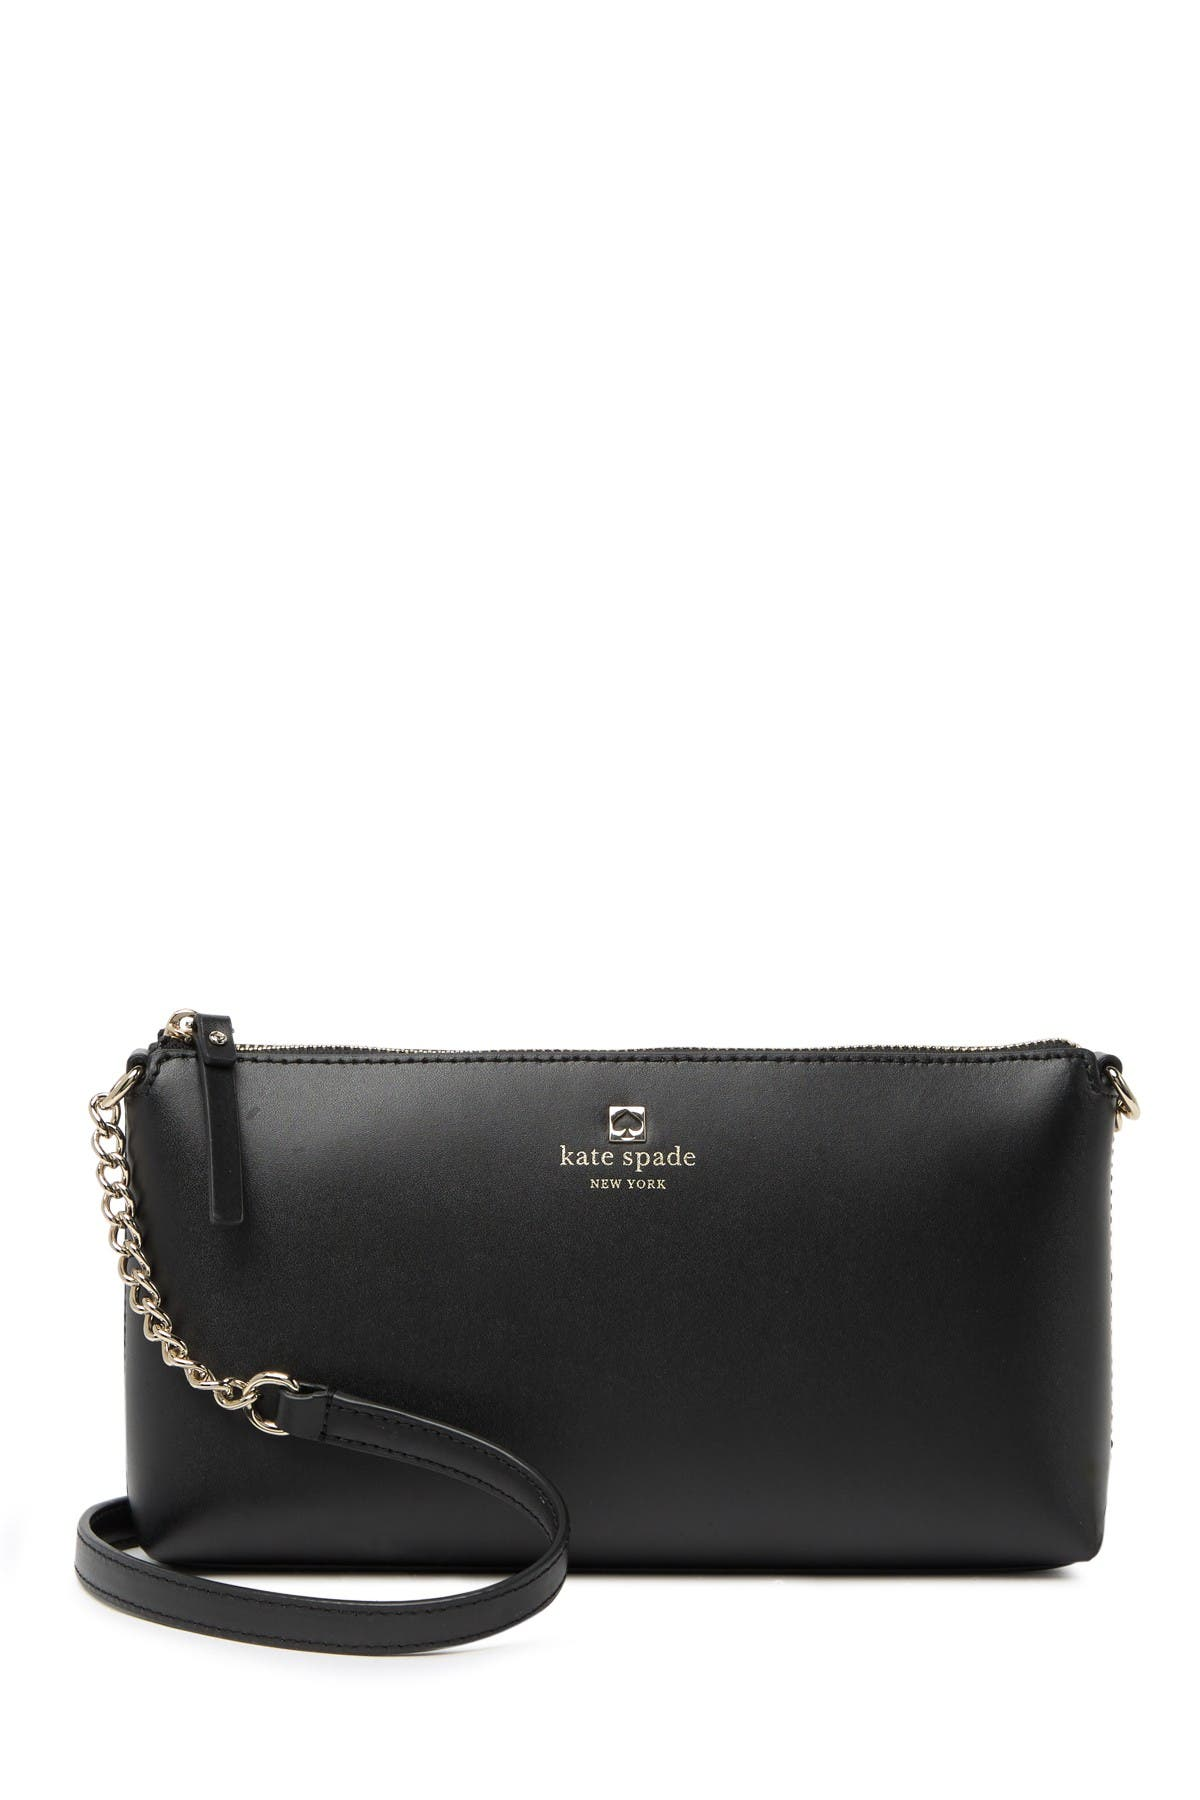 Image of kate spade new york sawyer street declan leather crossbody bag